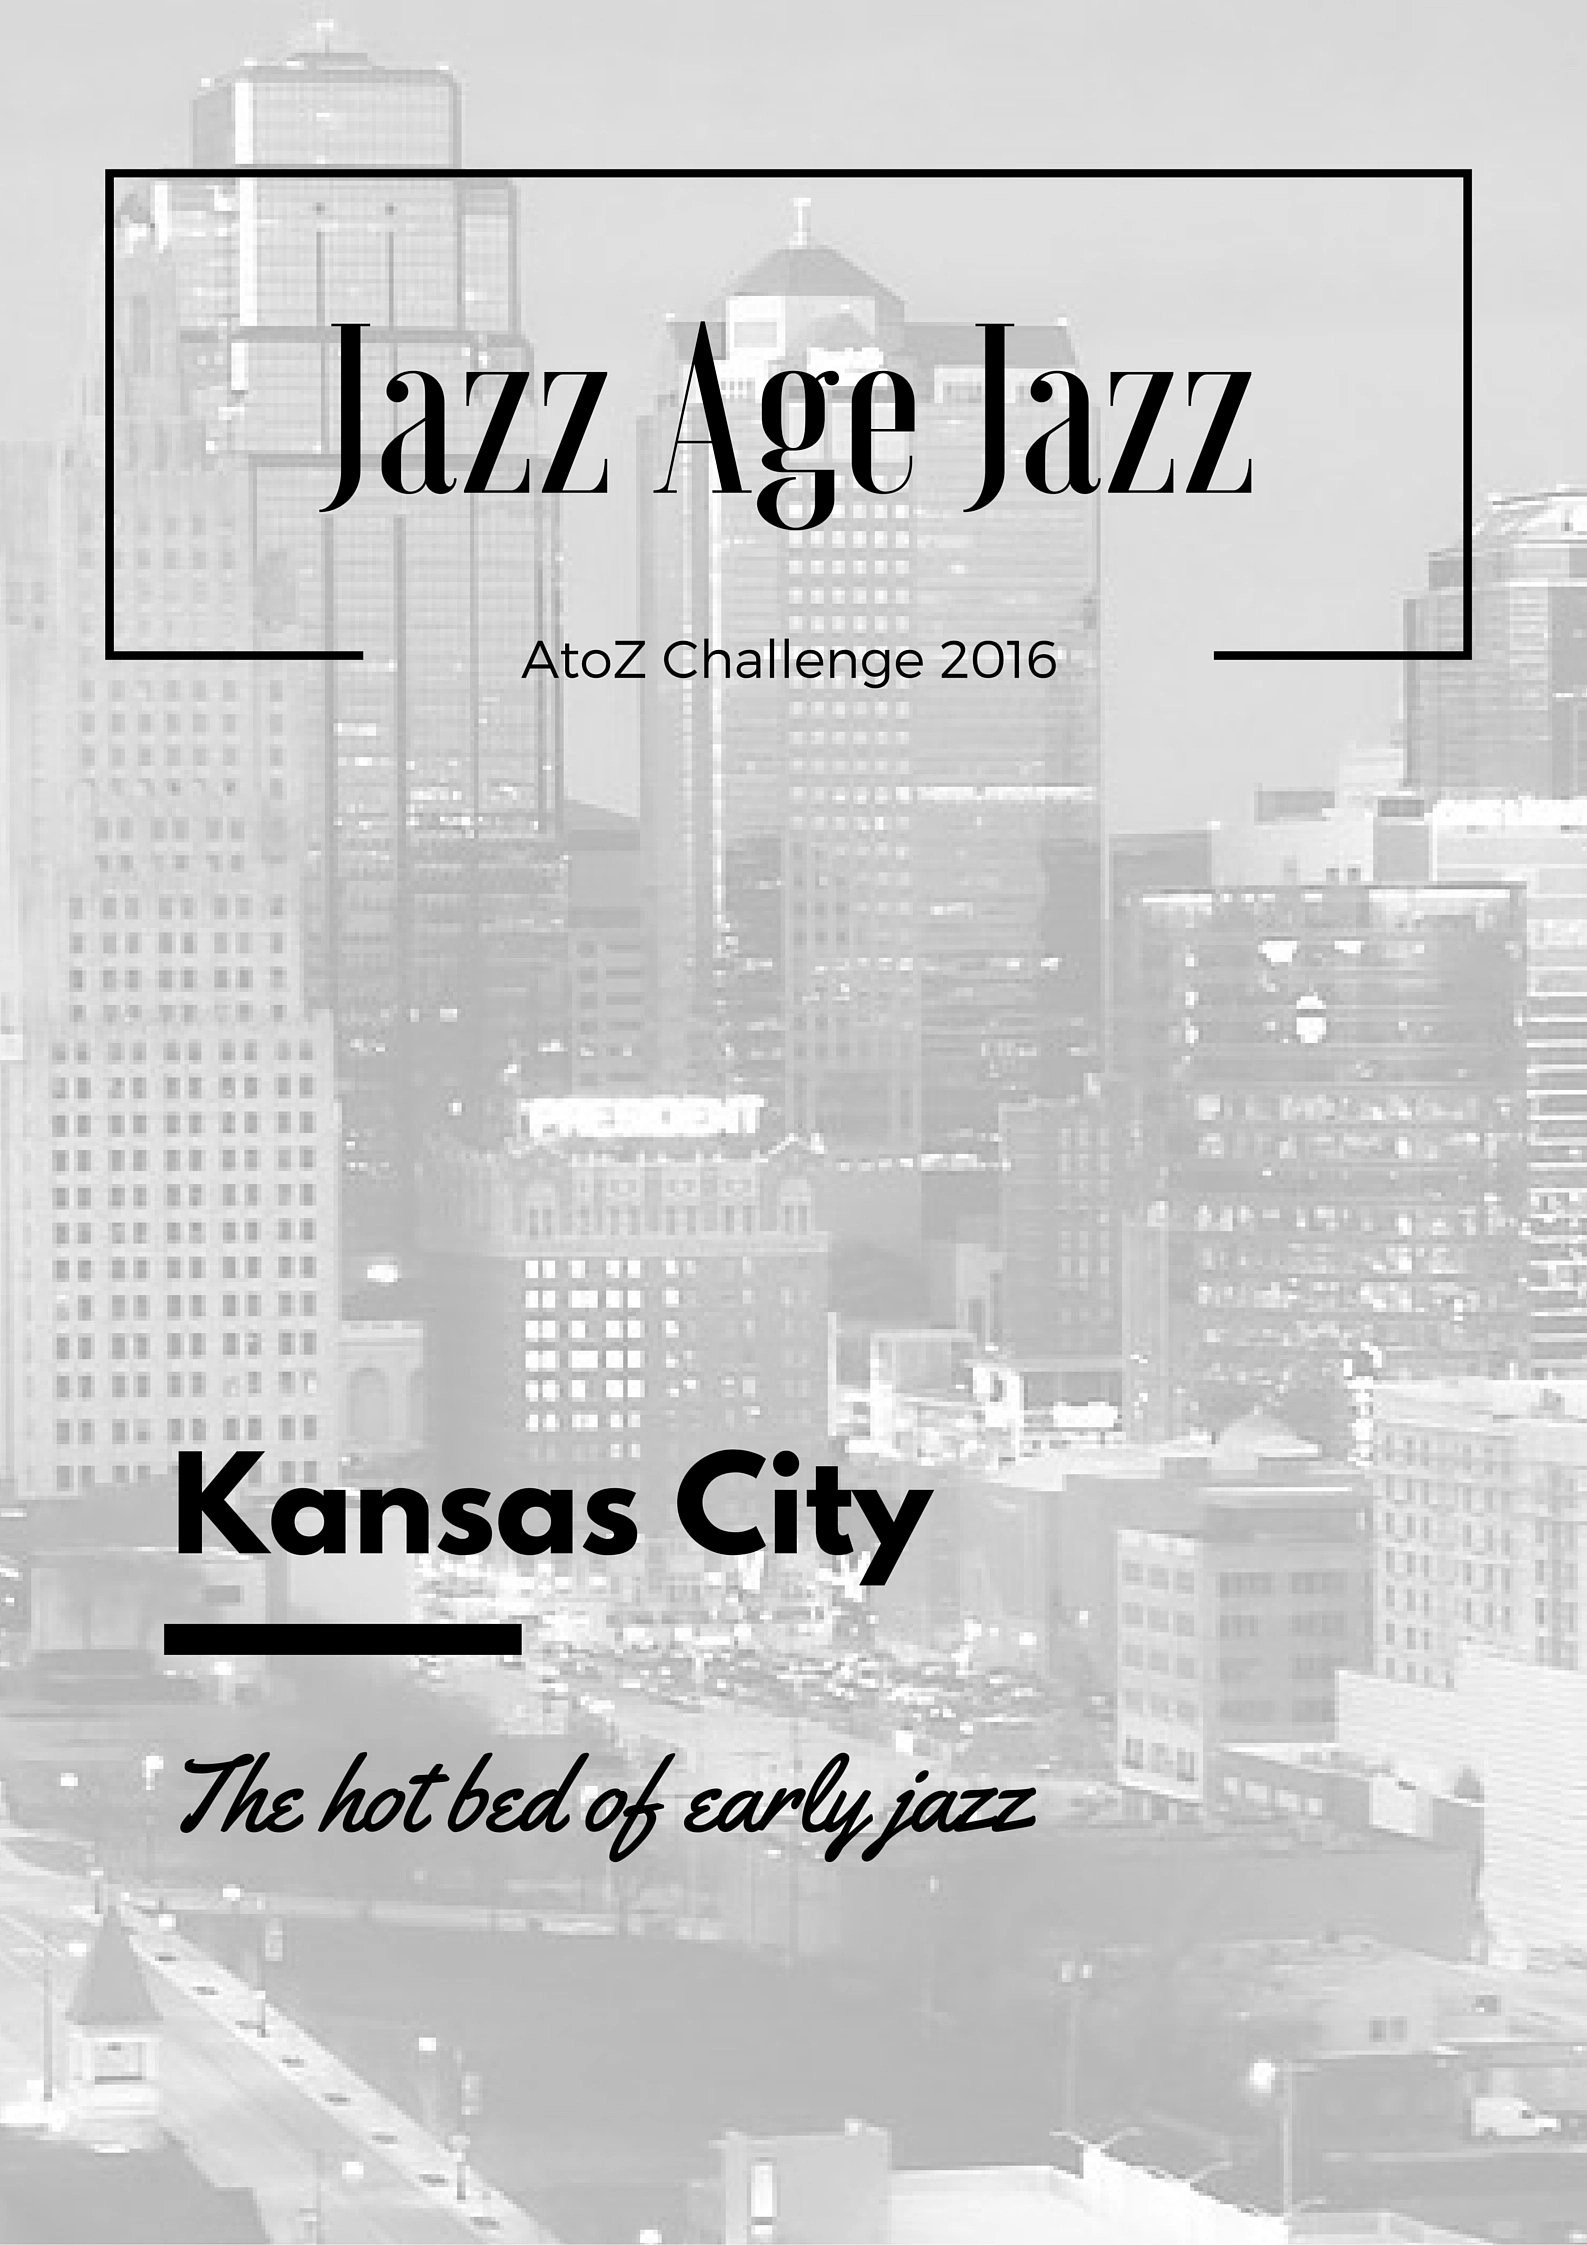 Jazz Age Jazz - Kansas City: the hot bed of early jazz